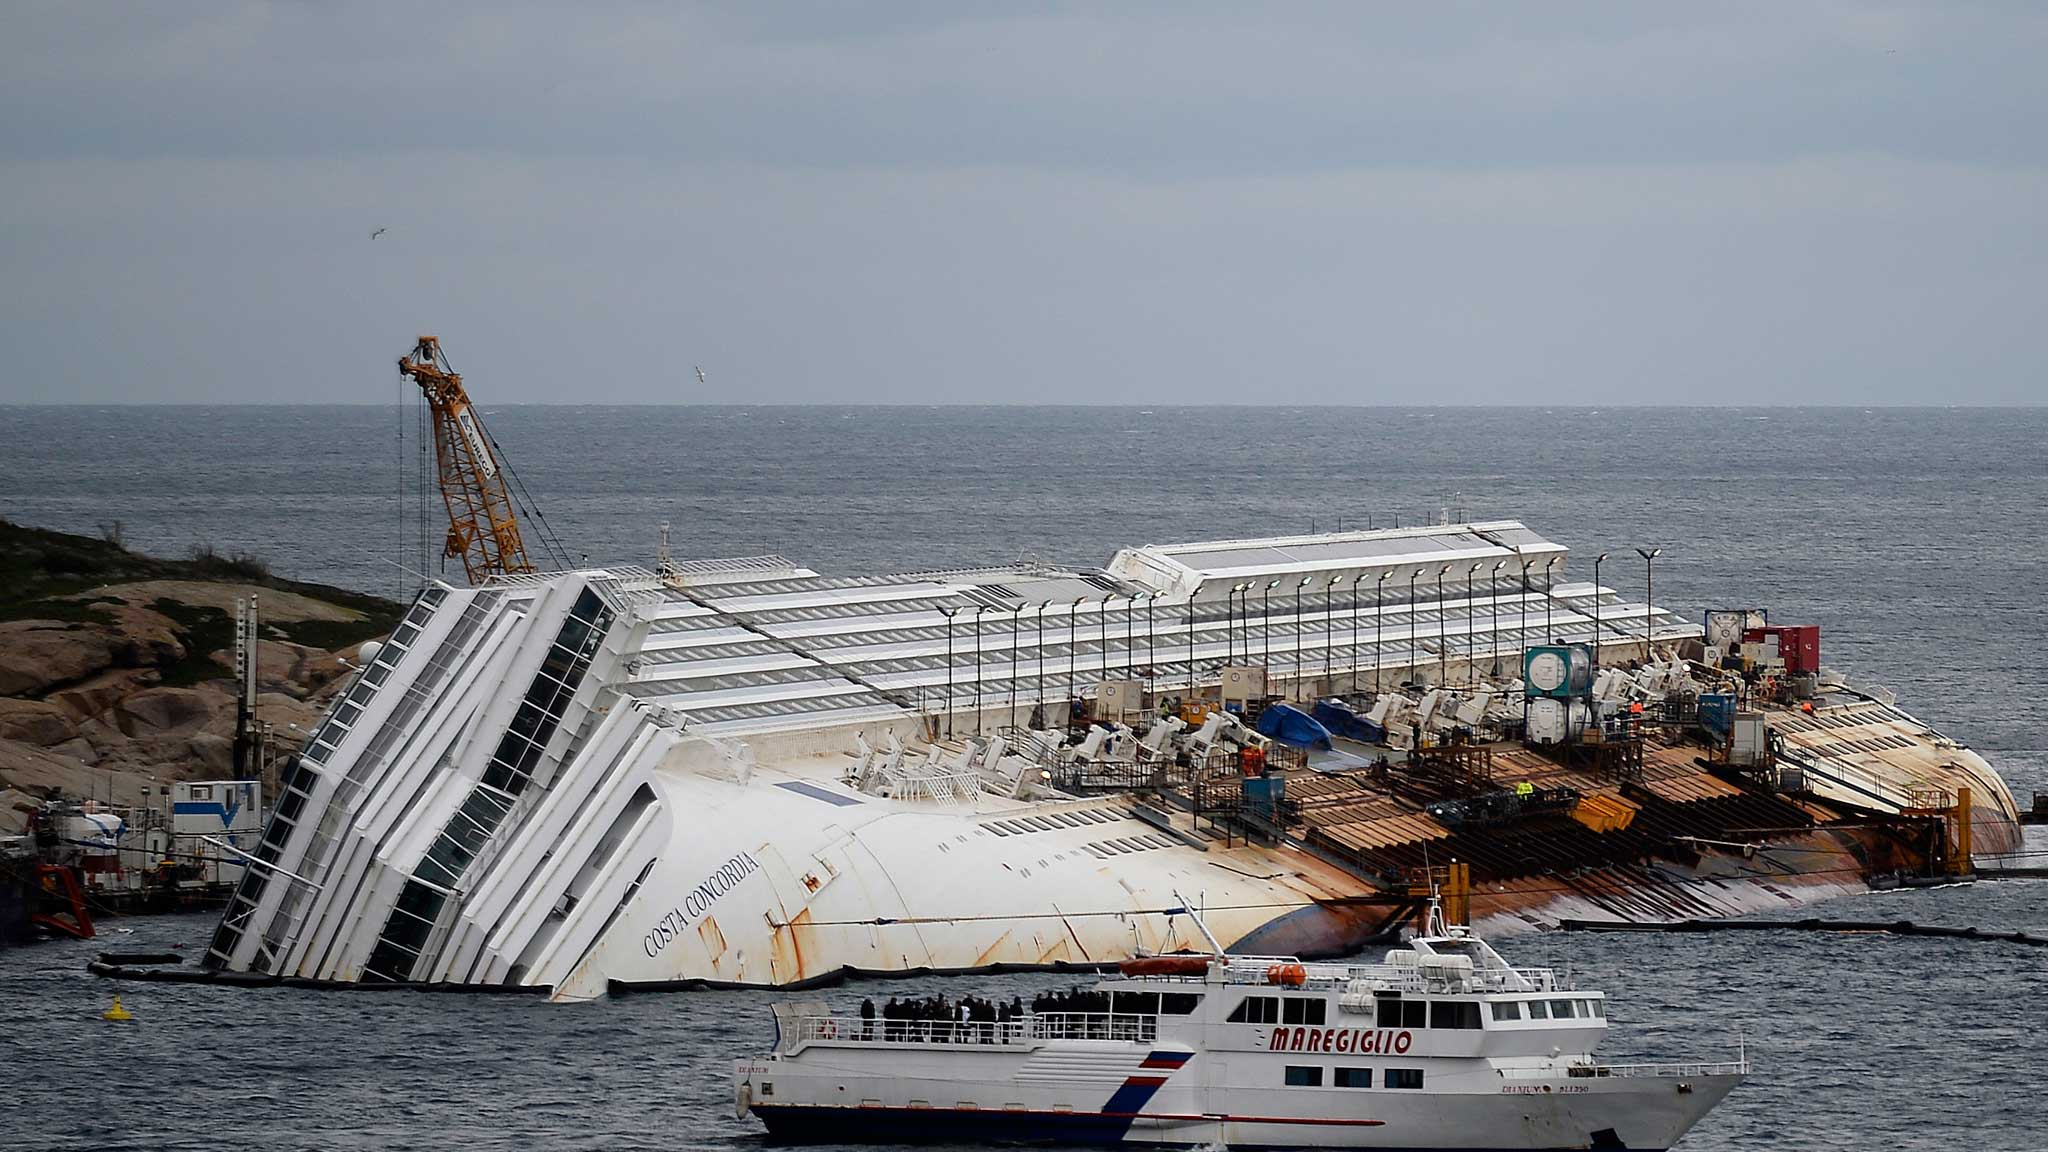 Catlin annoyed at Costa Concordia costs | Financial Times